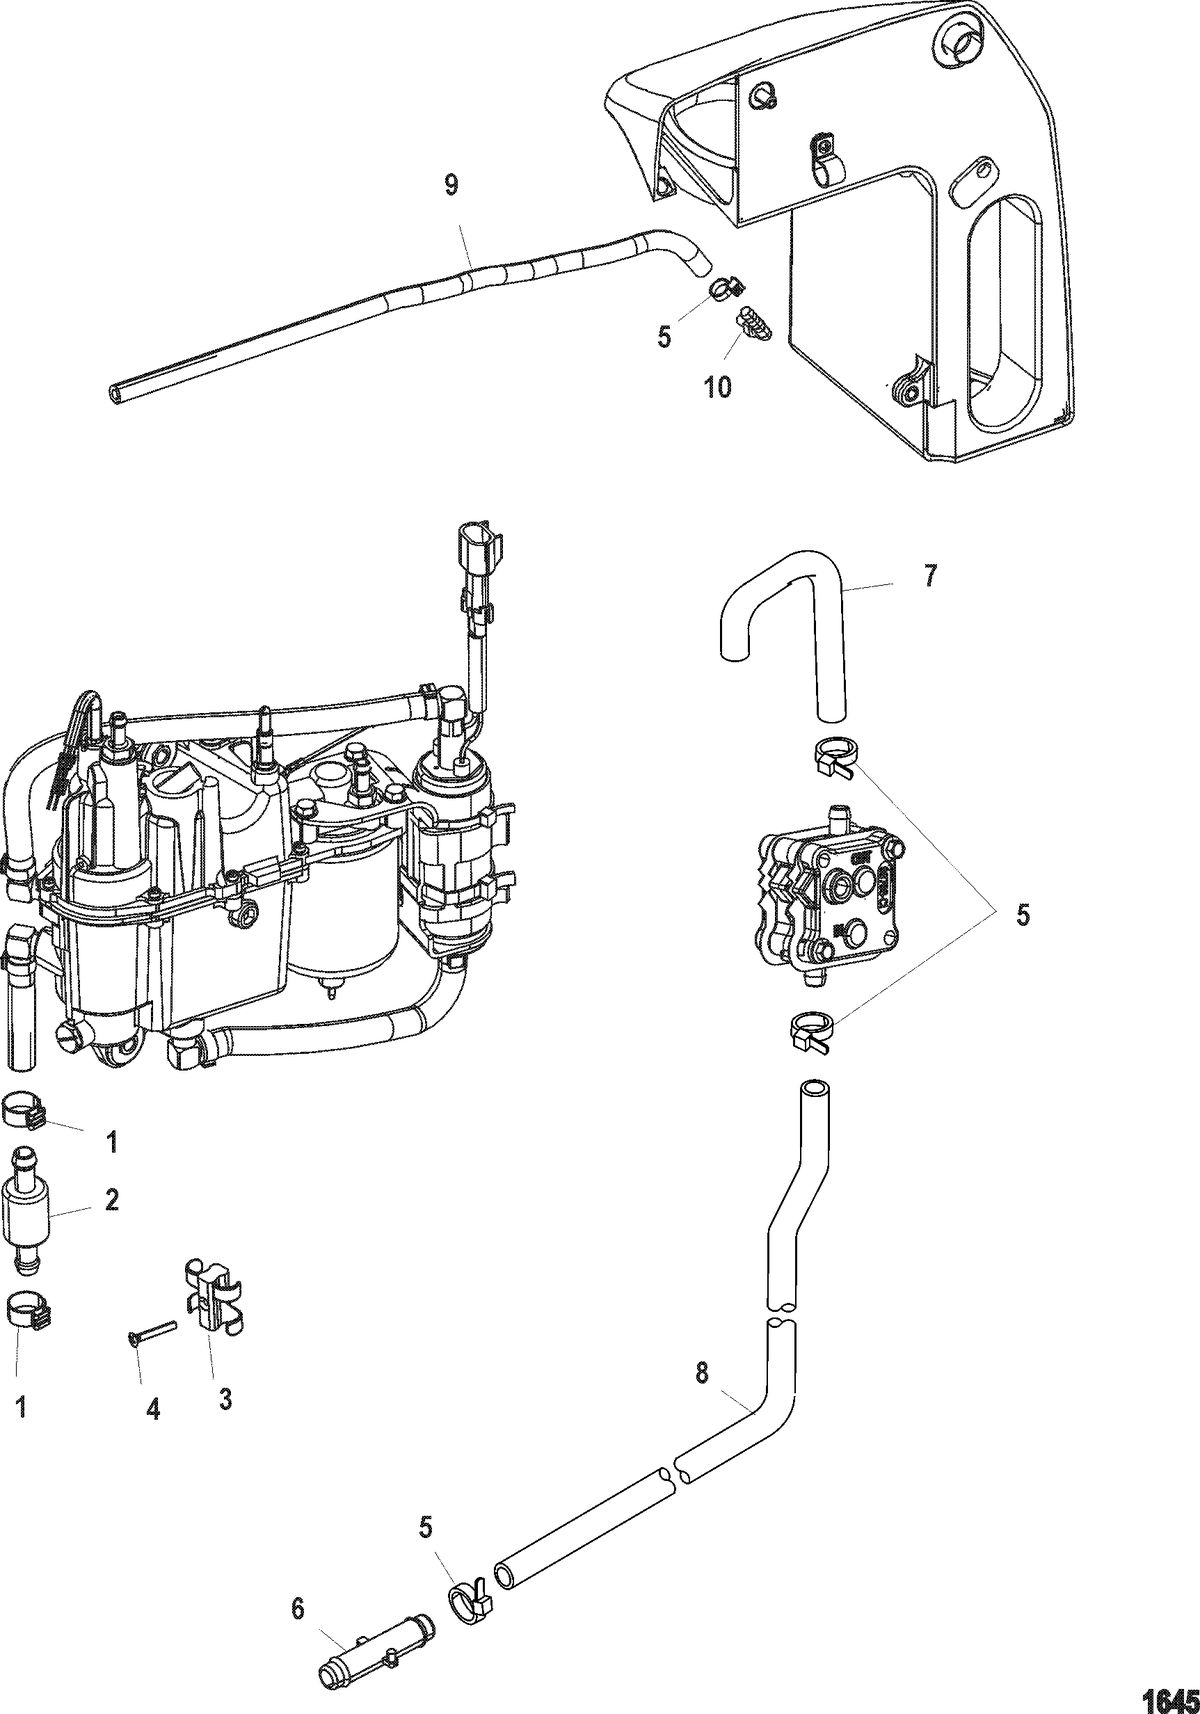 RACE OUTBOARD 250 XS(3.0L DFI) Fuel System